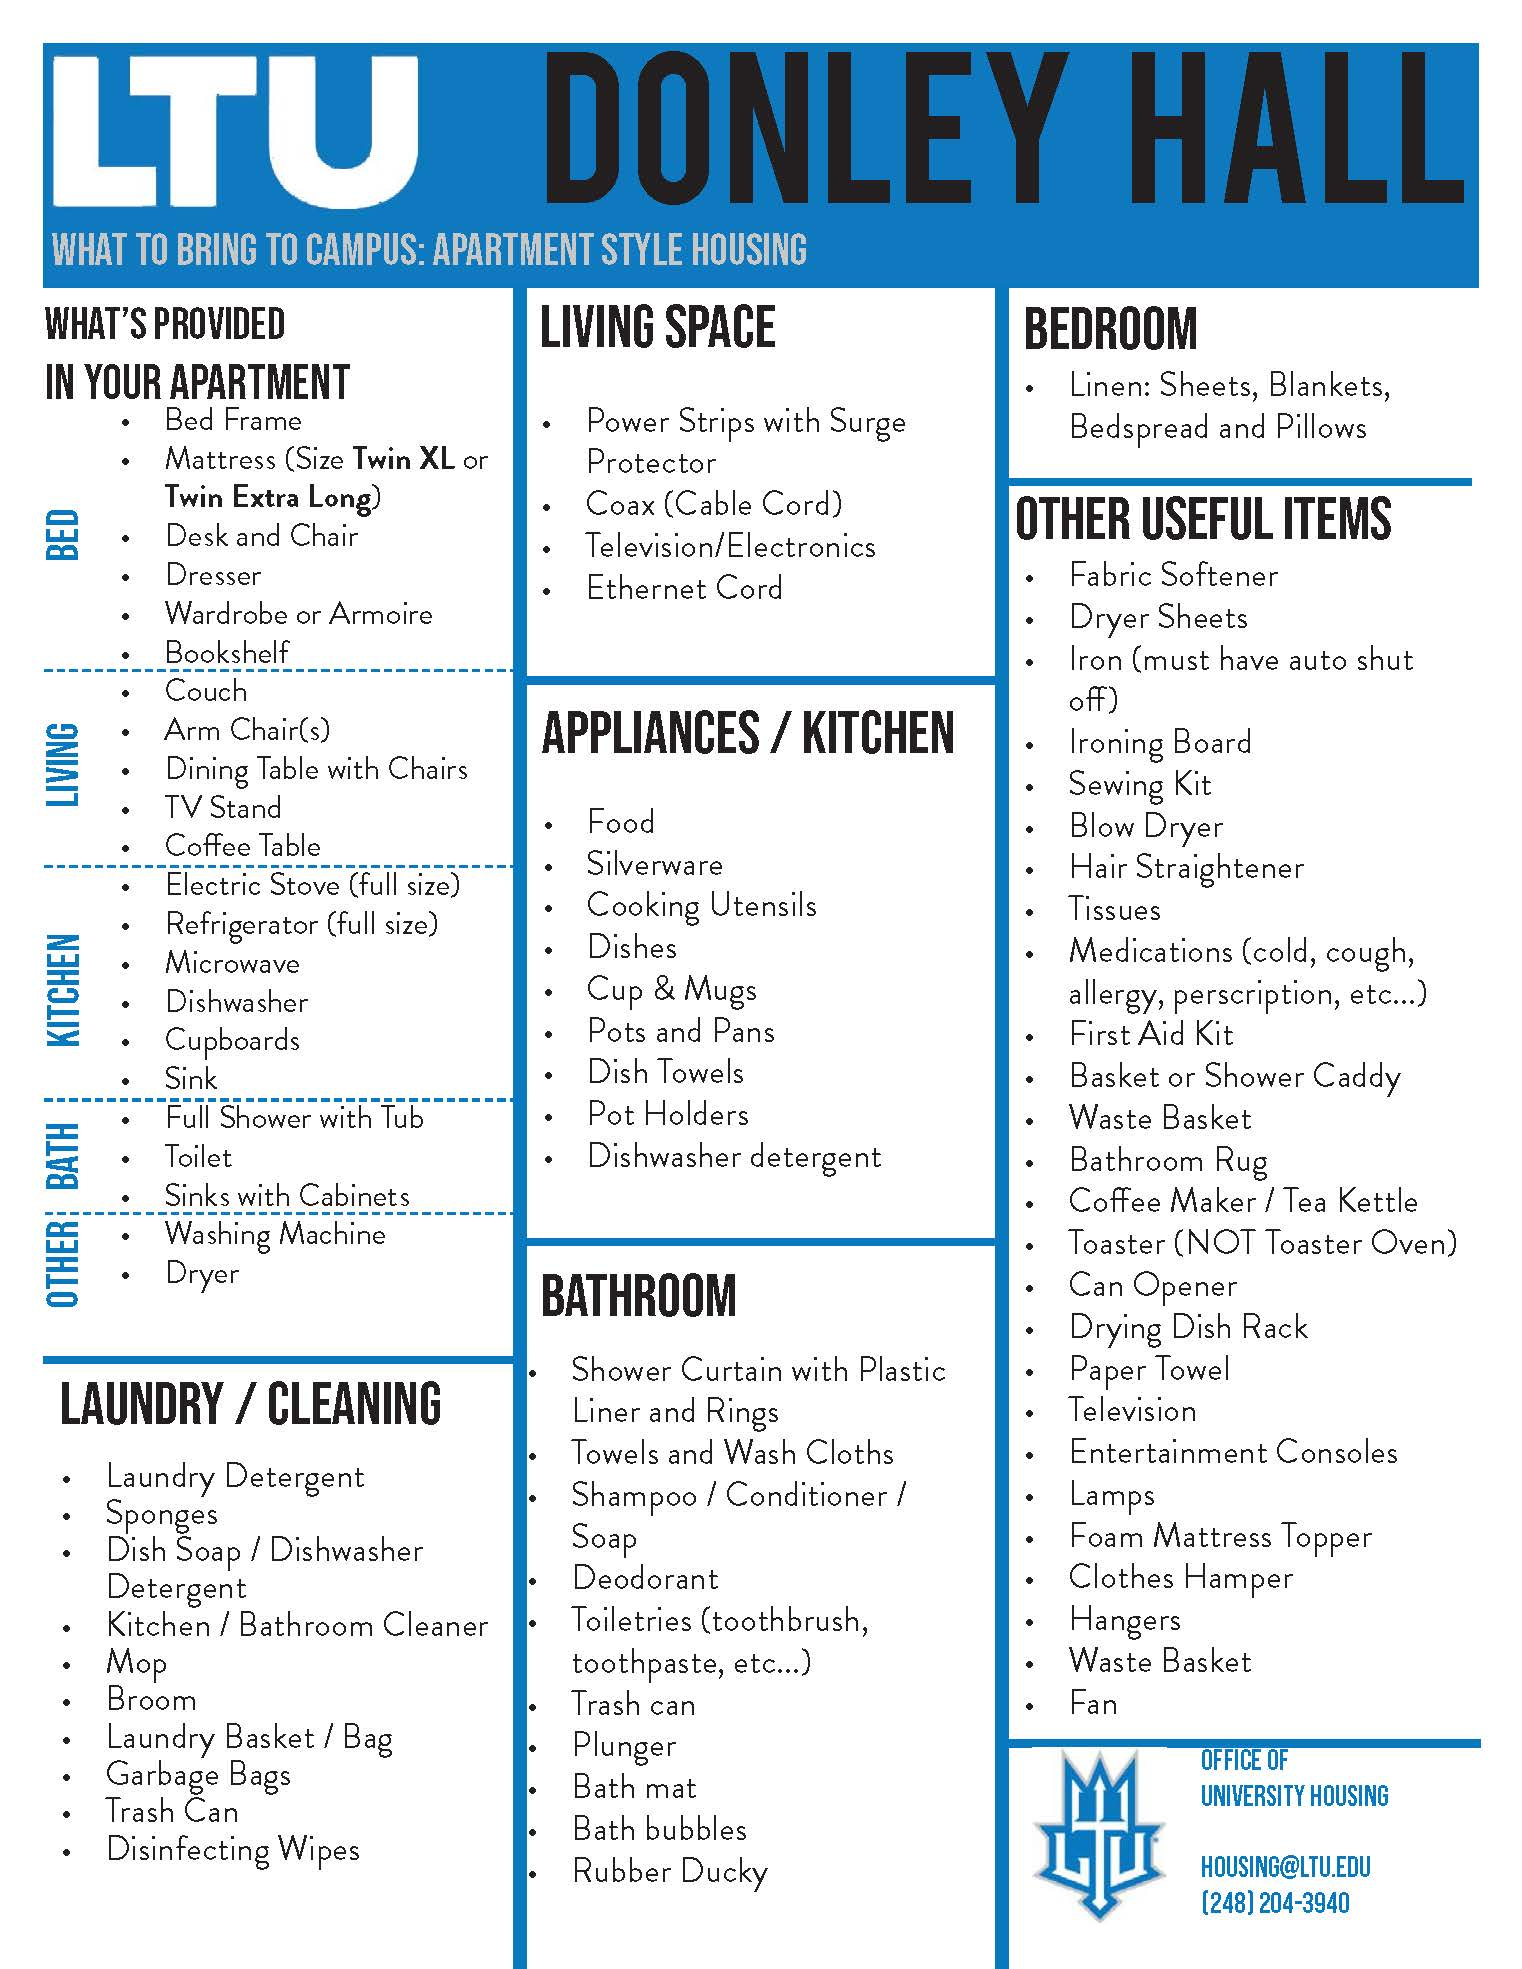 What to Bring to Campus List_Donley Hall